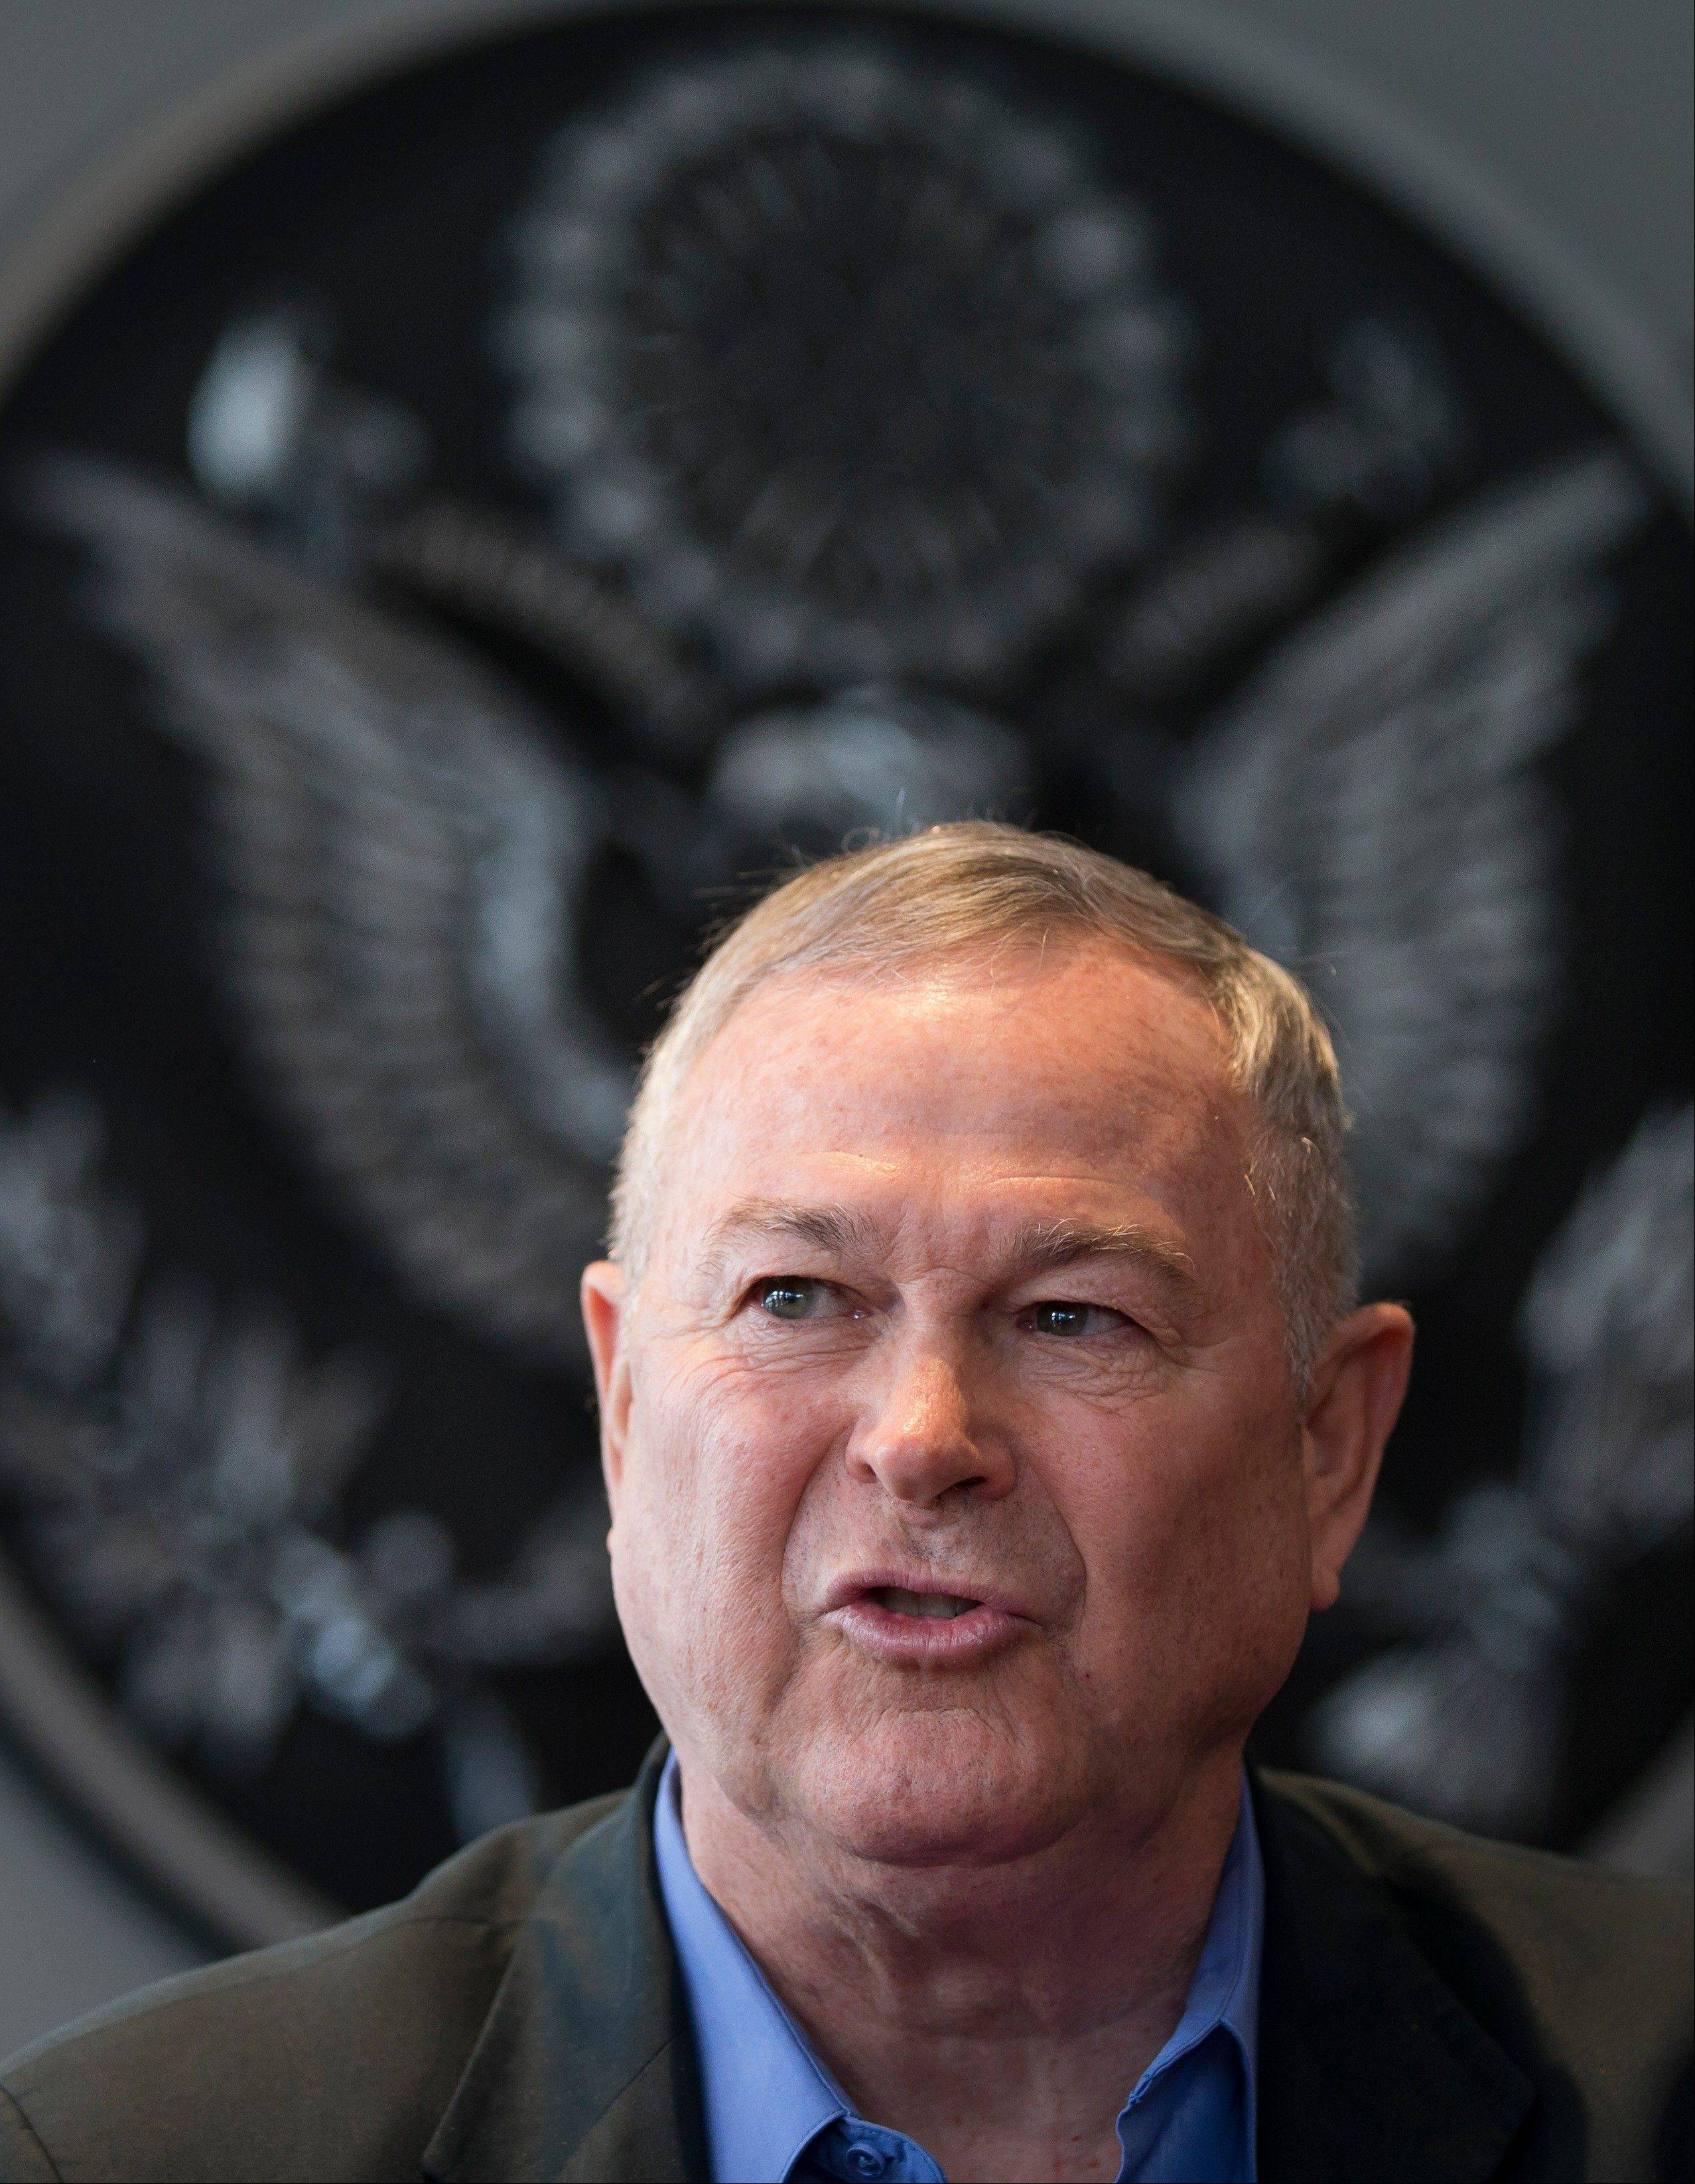 Rep. Dana Rohrabacher, who is leading a U.S. congressional delegation to Russia this week, said at a press conference Sunday that there was �nothing specific� that could have helped April�s bombings, but that the U.S. and Russia needed to work more closely on joint security threats.